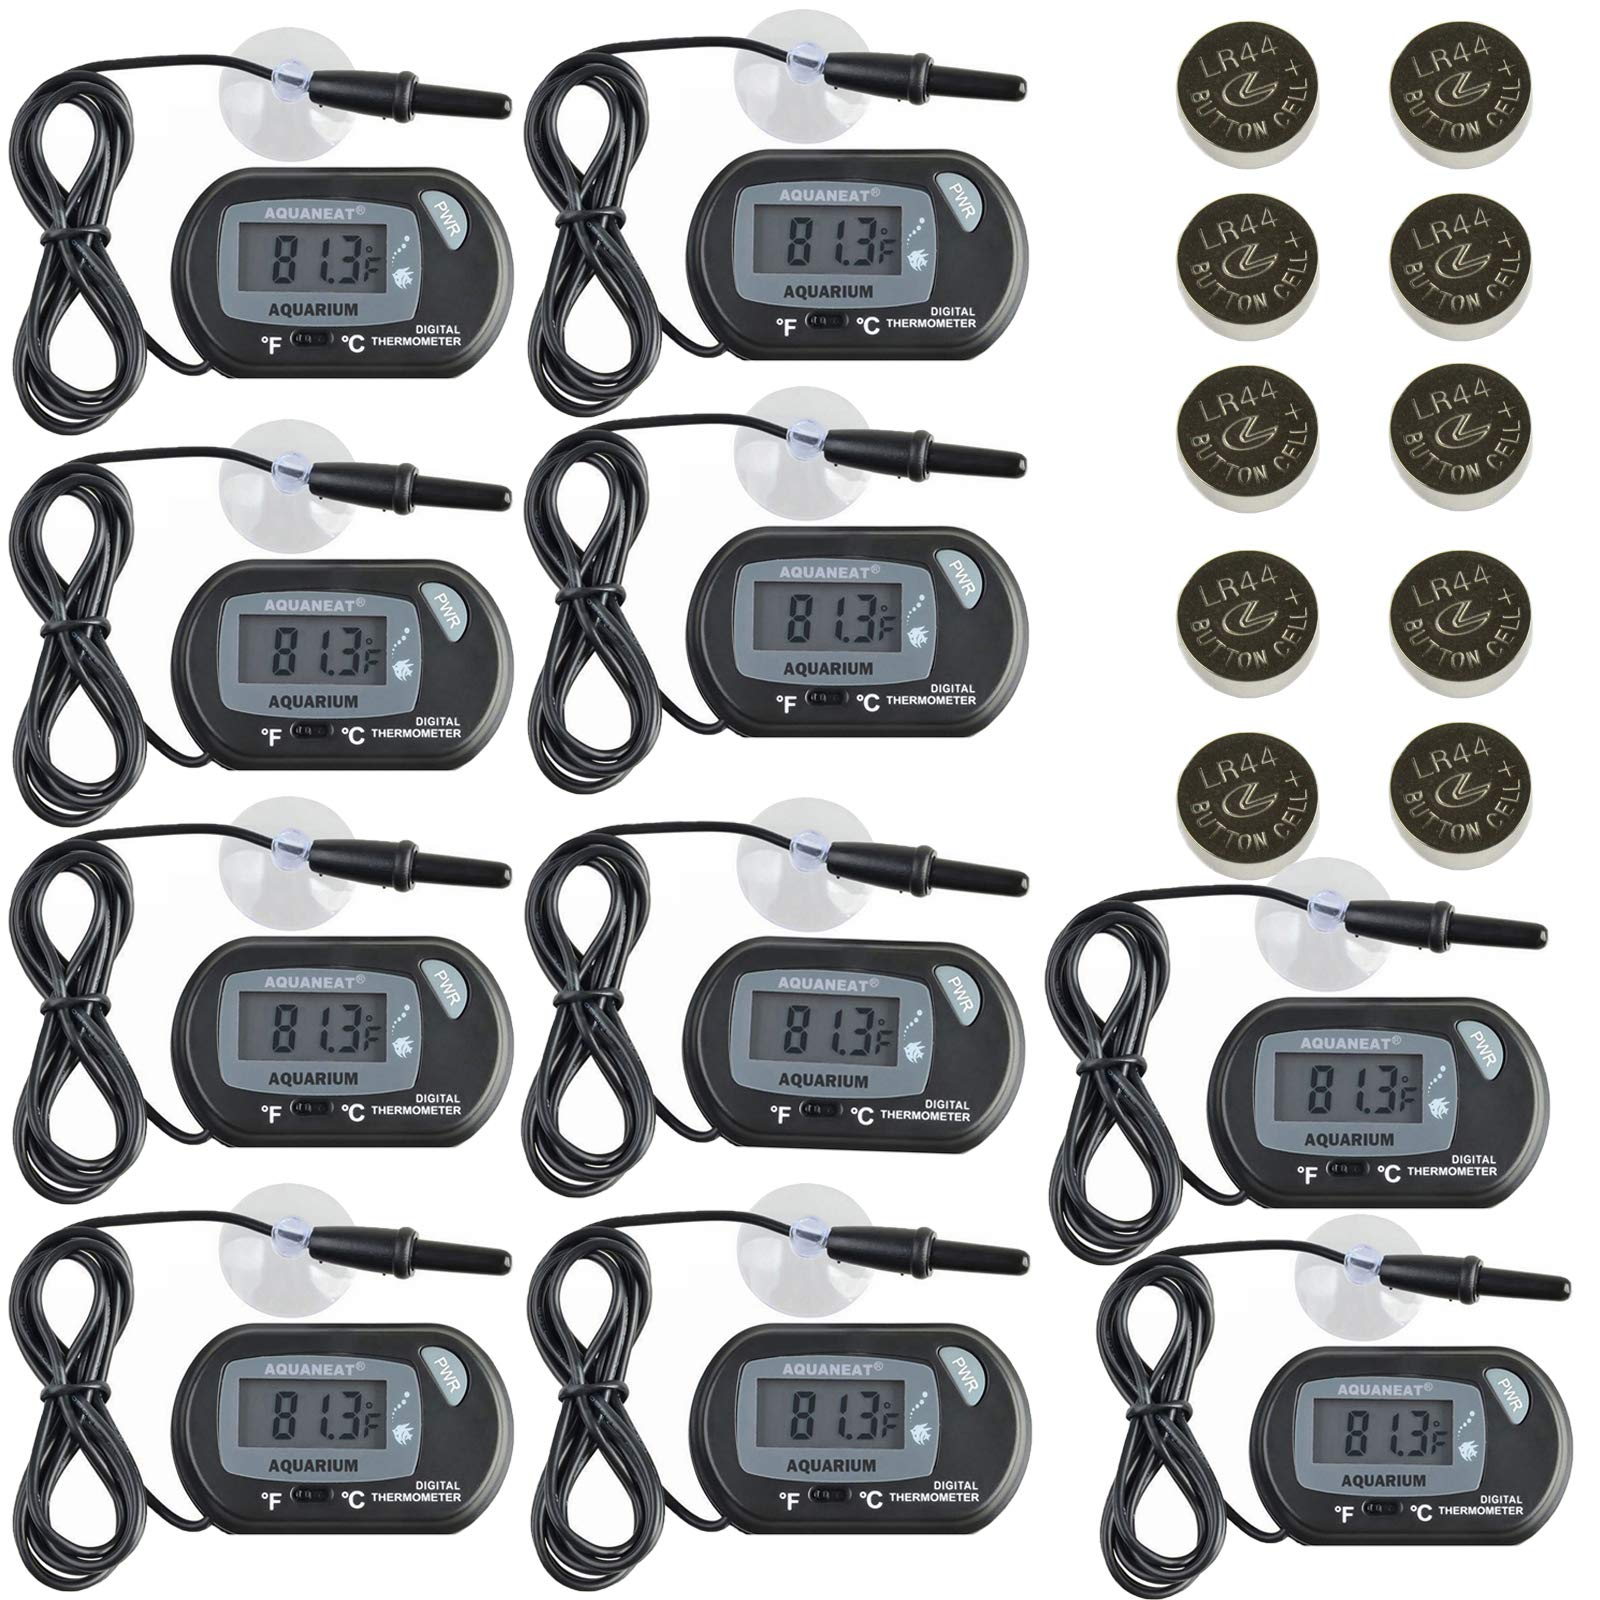 Aquaneat Aquarium Digital Thermometer 10 Pack Fish Tank Water Terrarium Free Extra Button Cell by Aquaneat